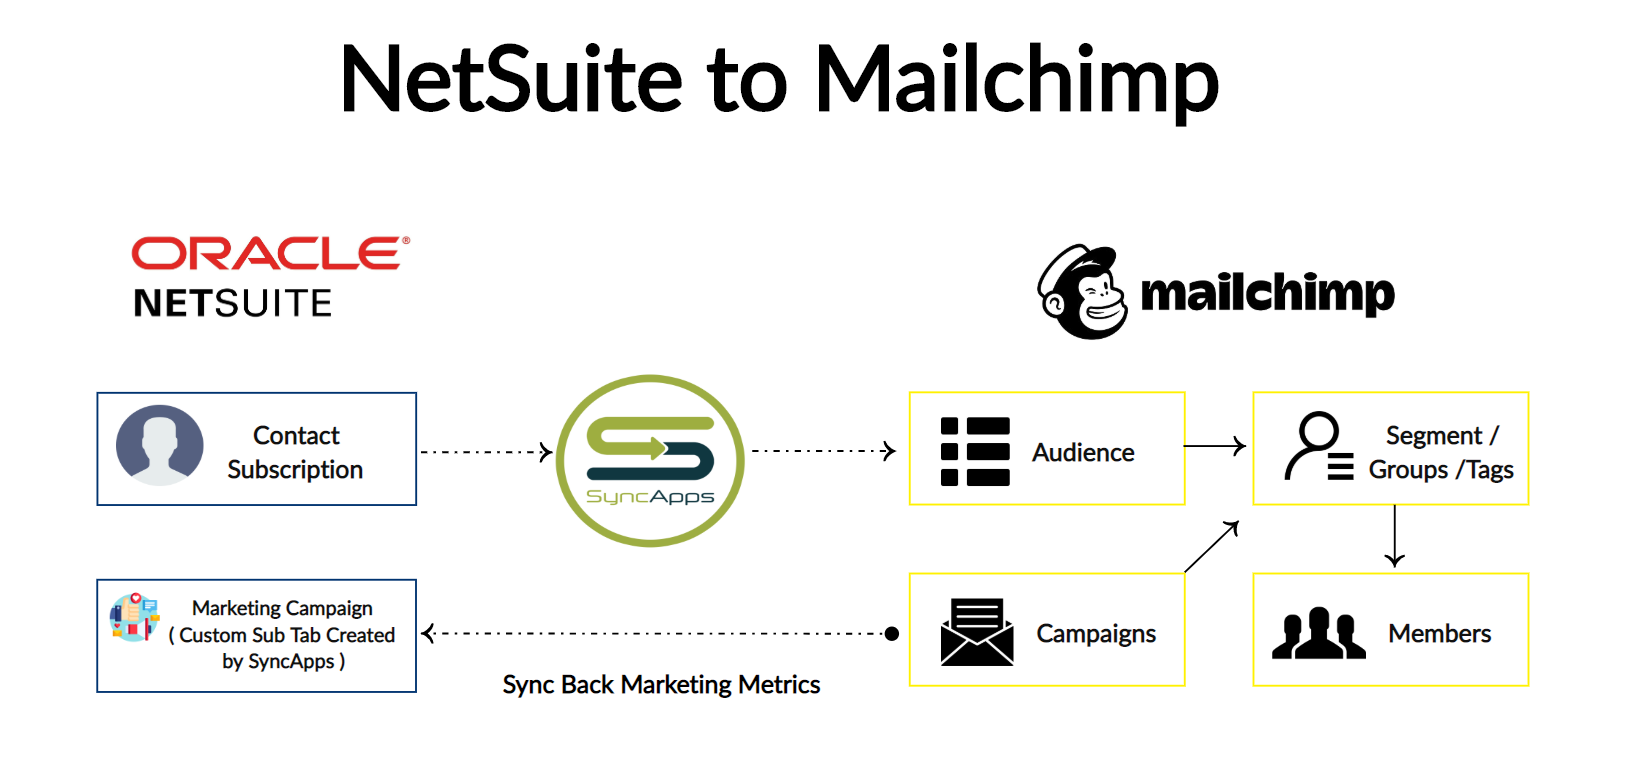 NetSuite_to_Mailchimp_Audiences_Creately__2_.png